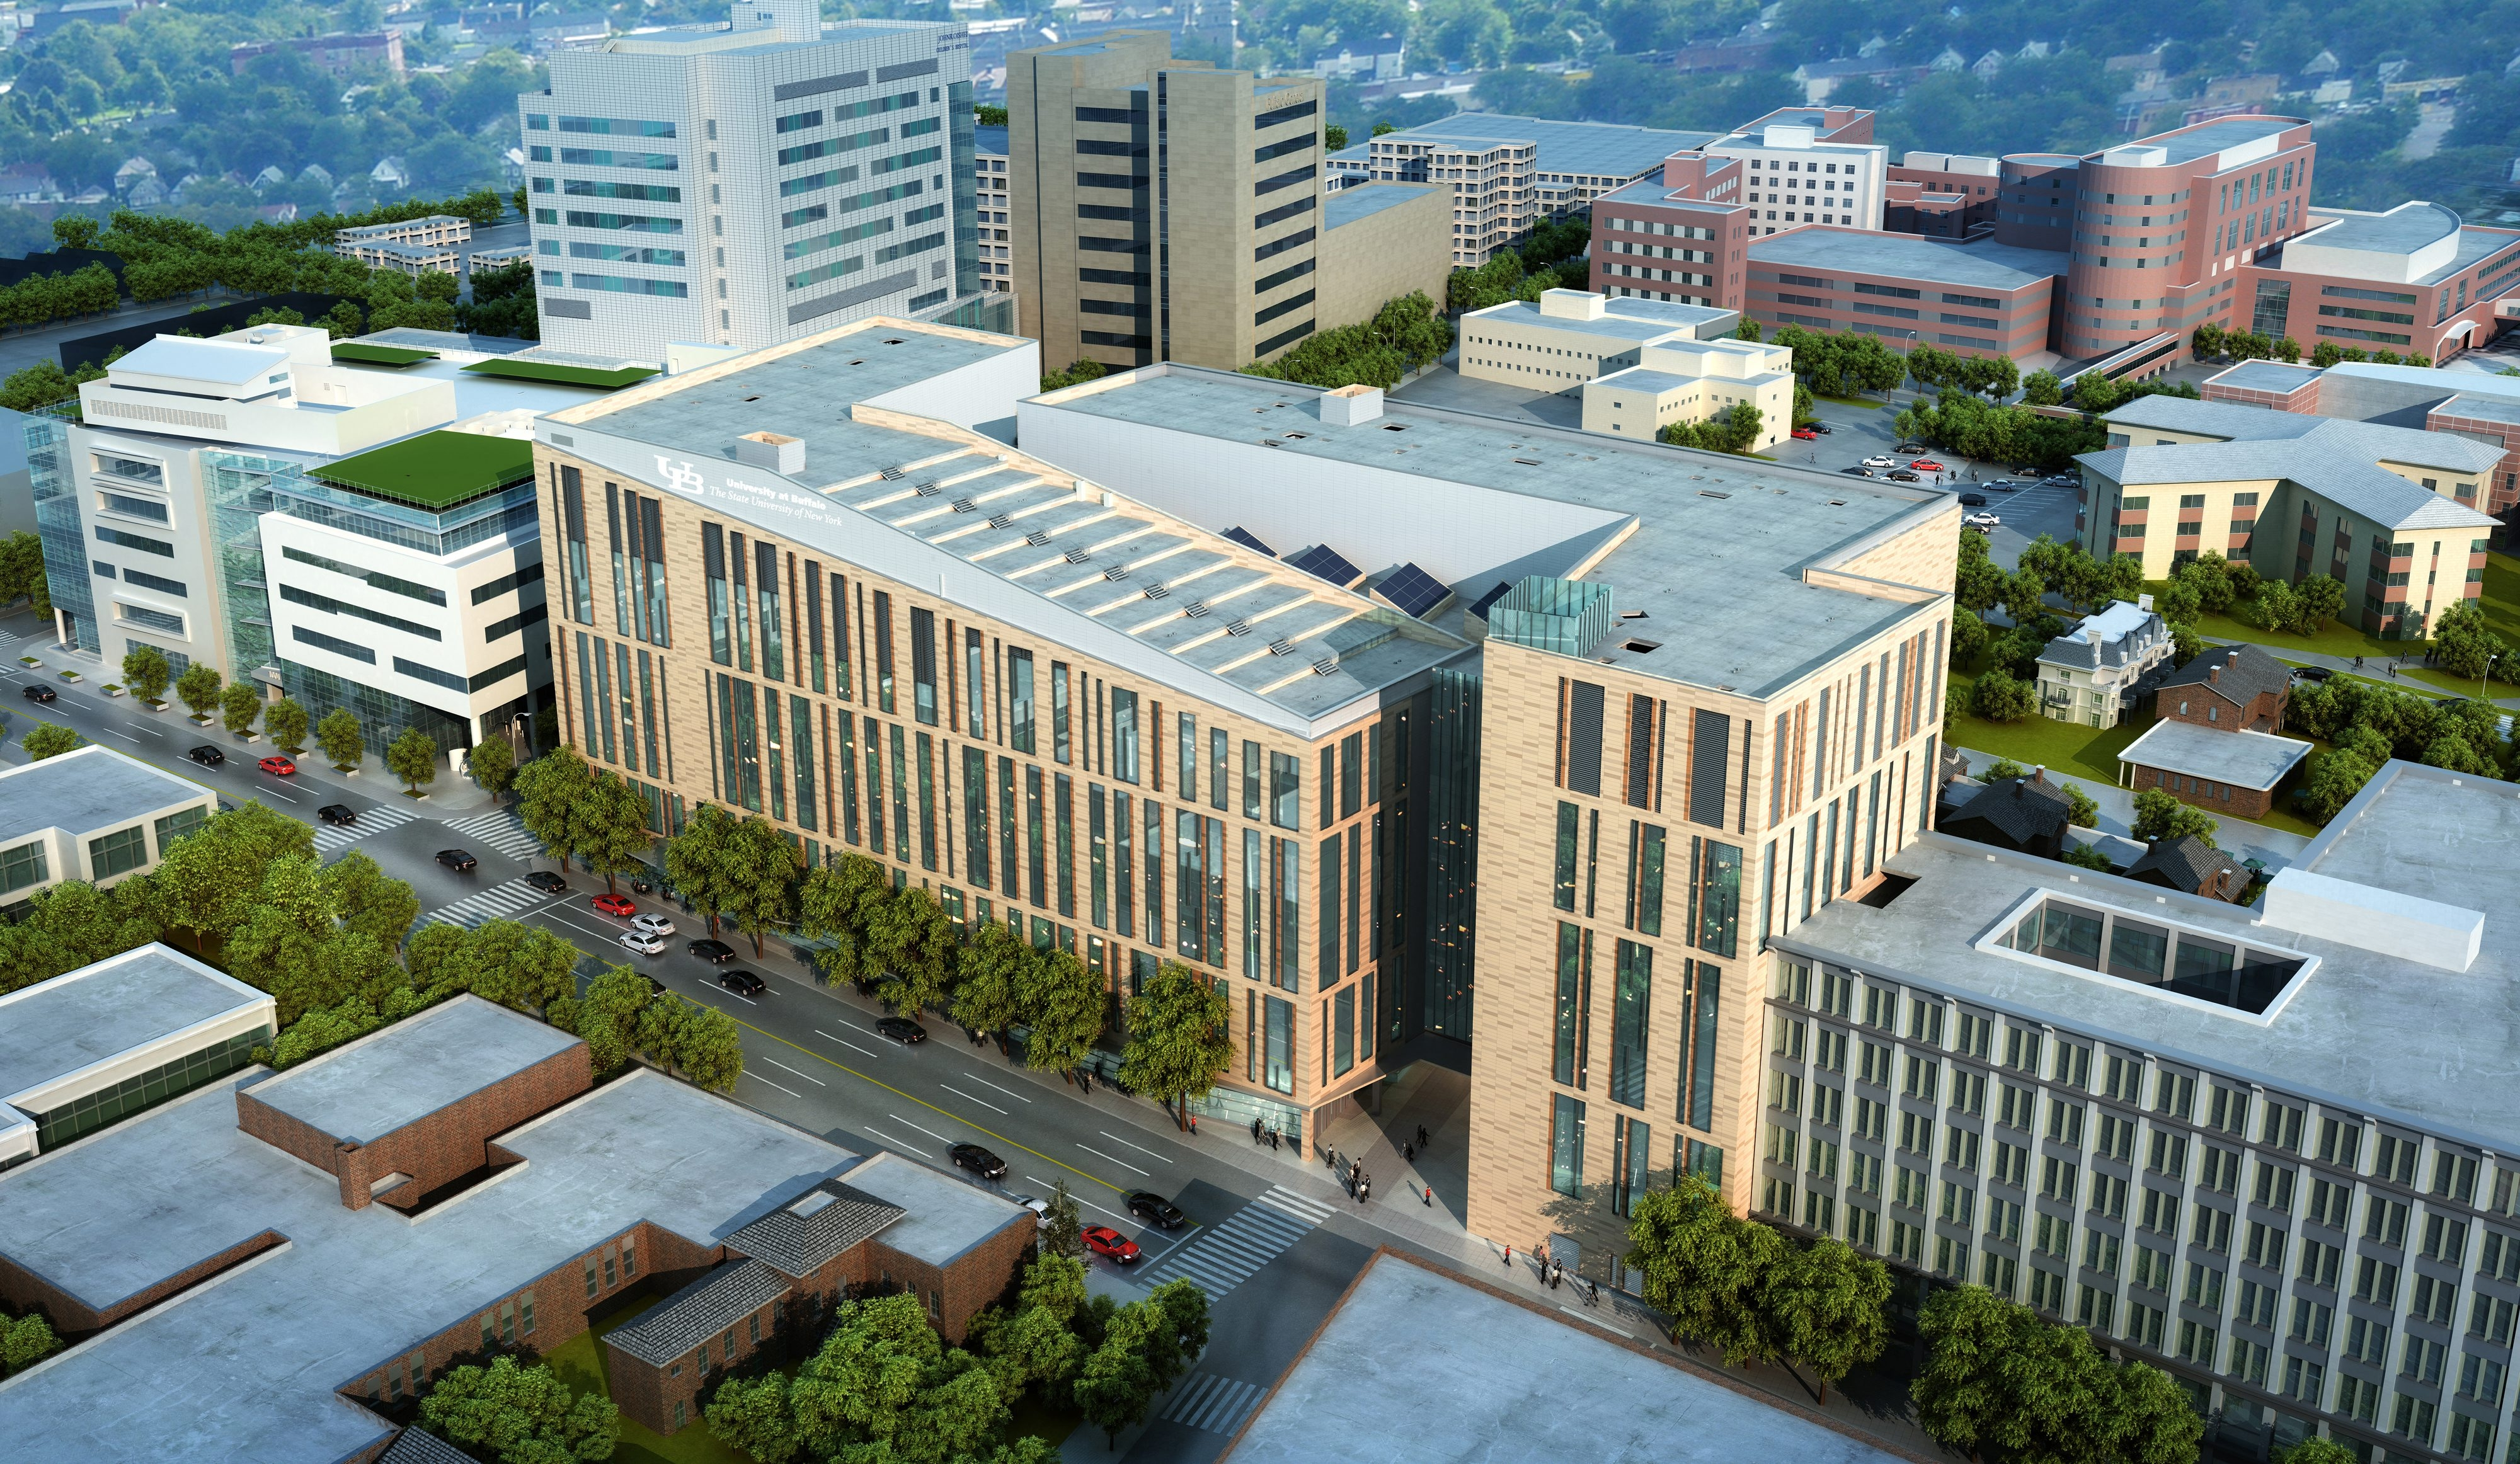 The University at Buffalo's new $375 million medical school will play a key role in the burgeoning Buffalo Niagara Medical Campus.